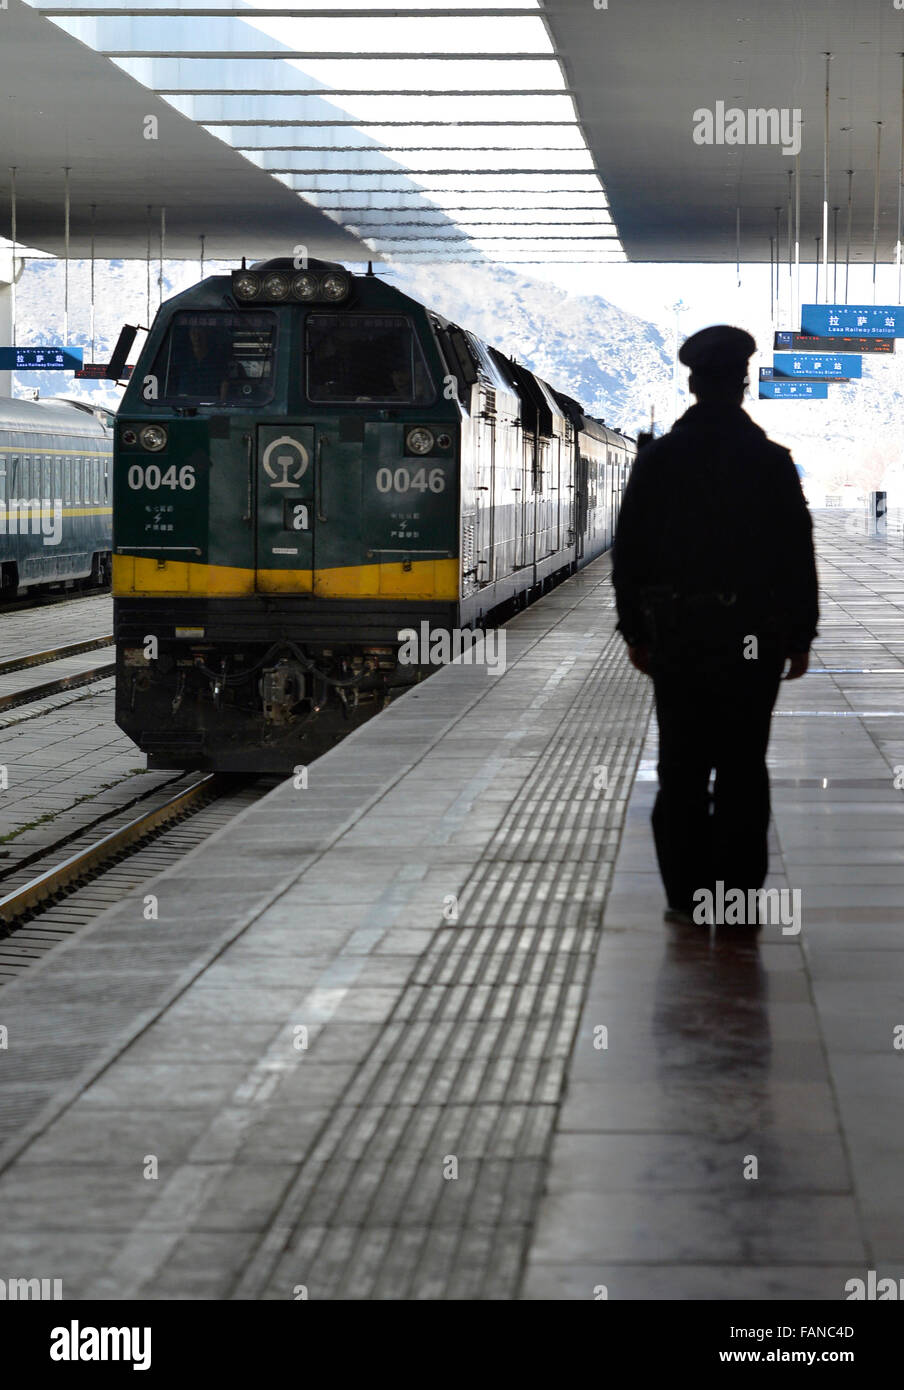 Lhasa, China's Tibet Autonomous Region. 2nd Jan, 2016. A train arrives at a train station in Lhasa, capital - Stock Image